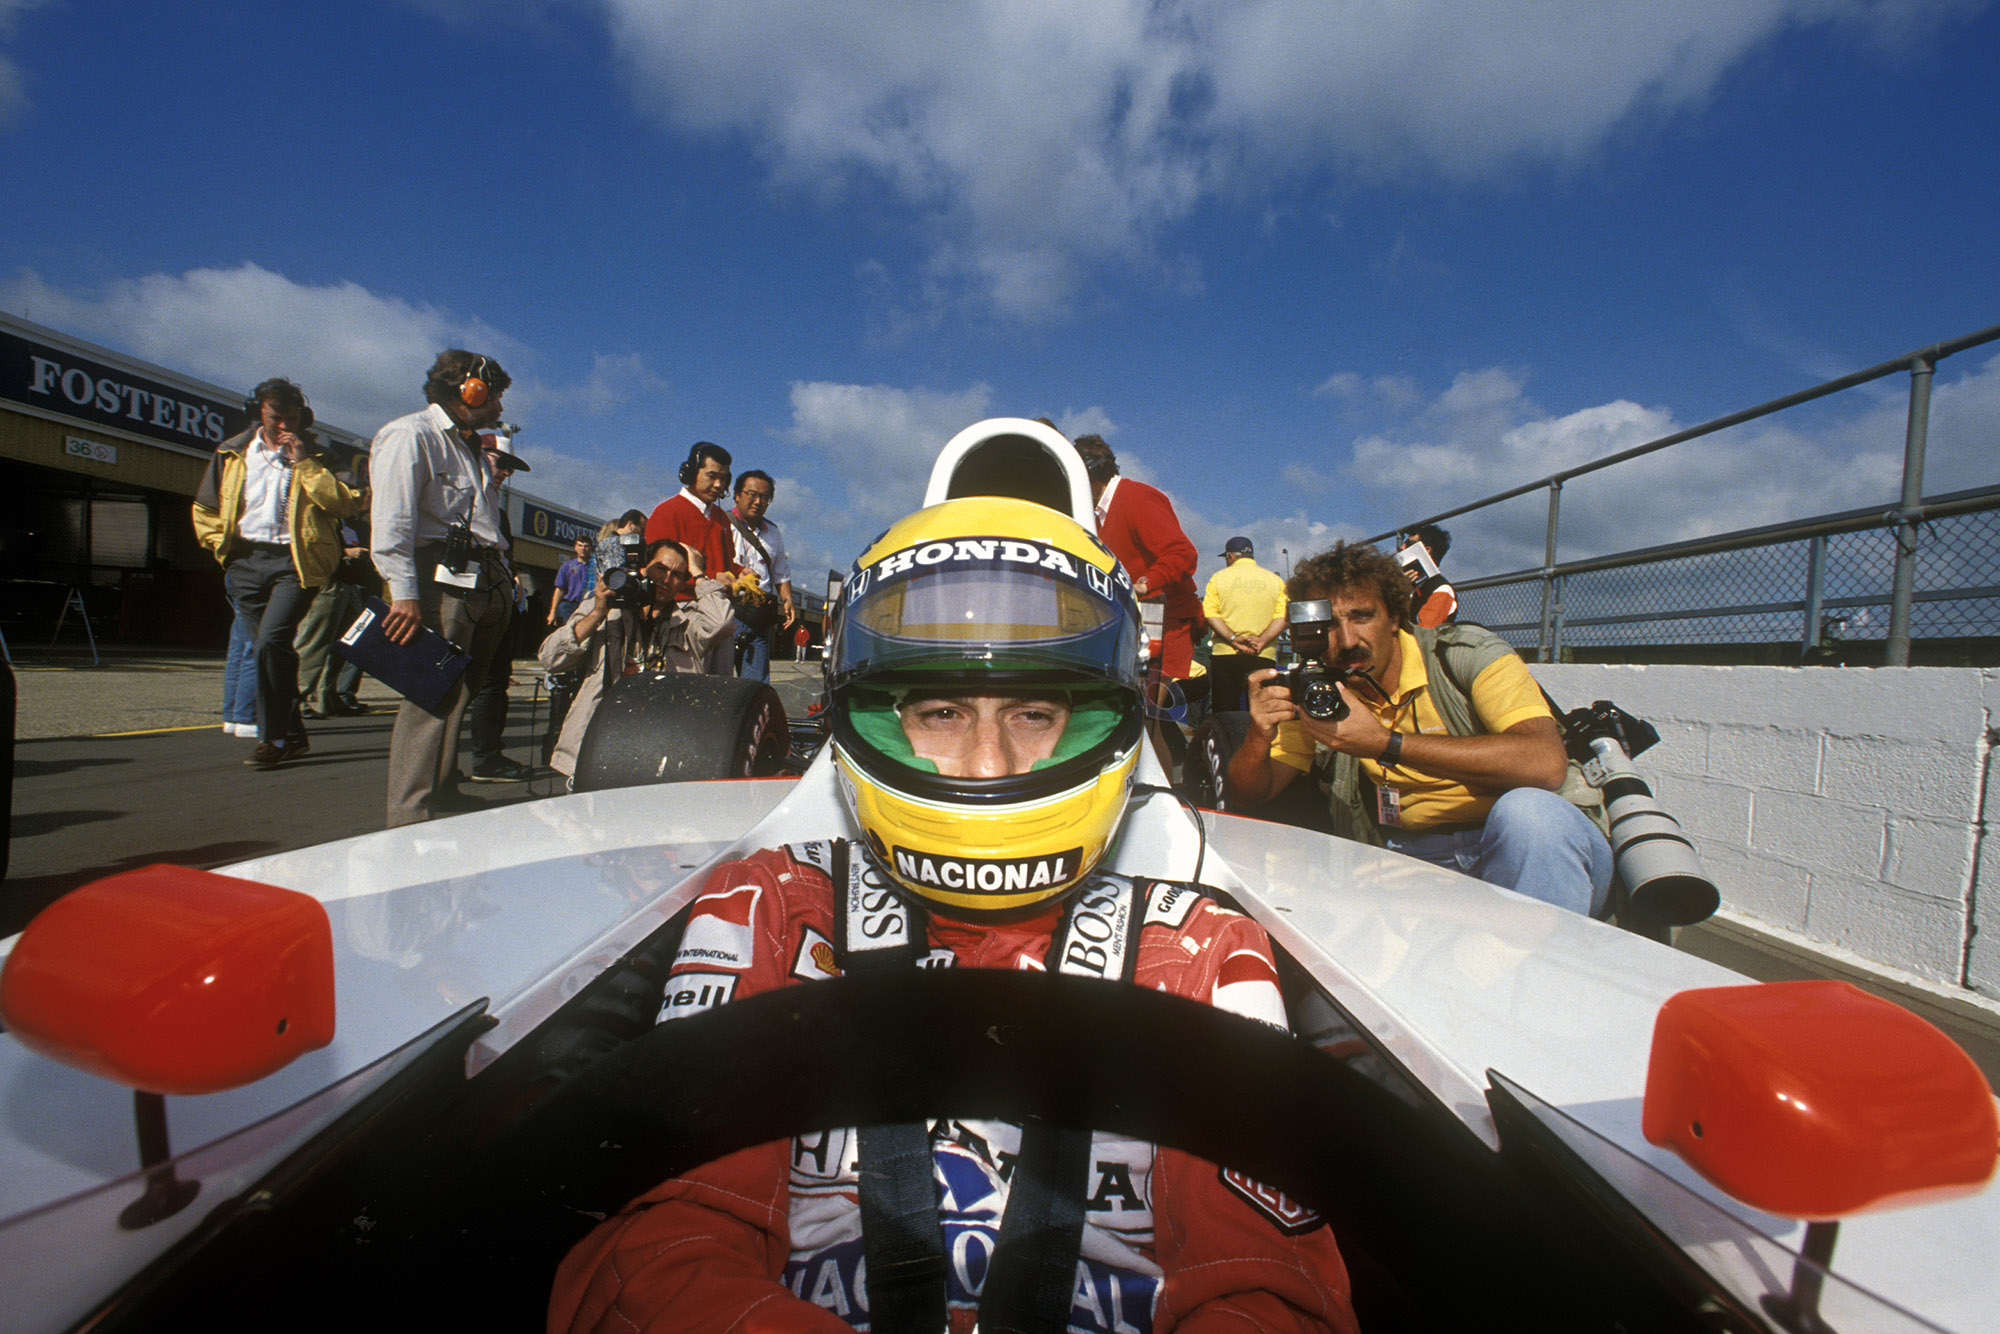 Gallery: Ayrton Senna's racing career in pictures